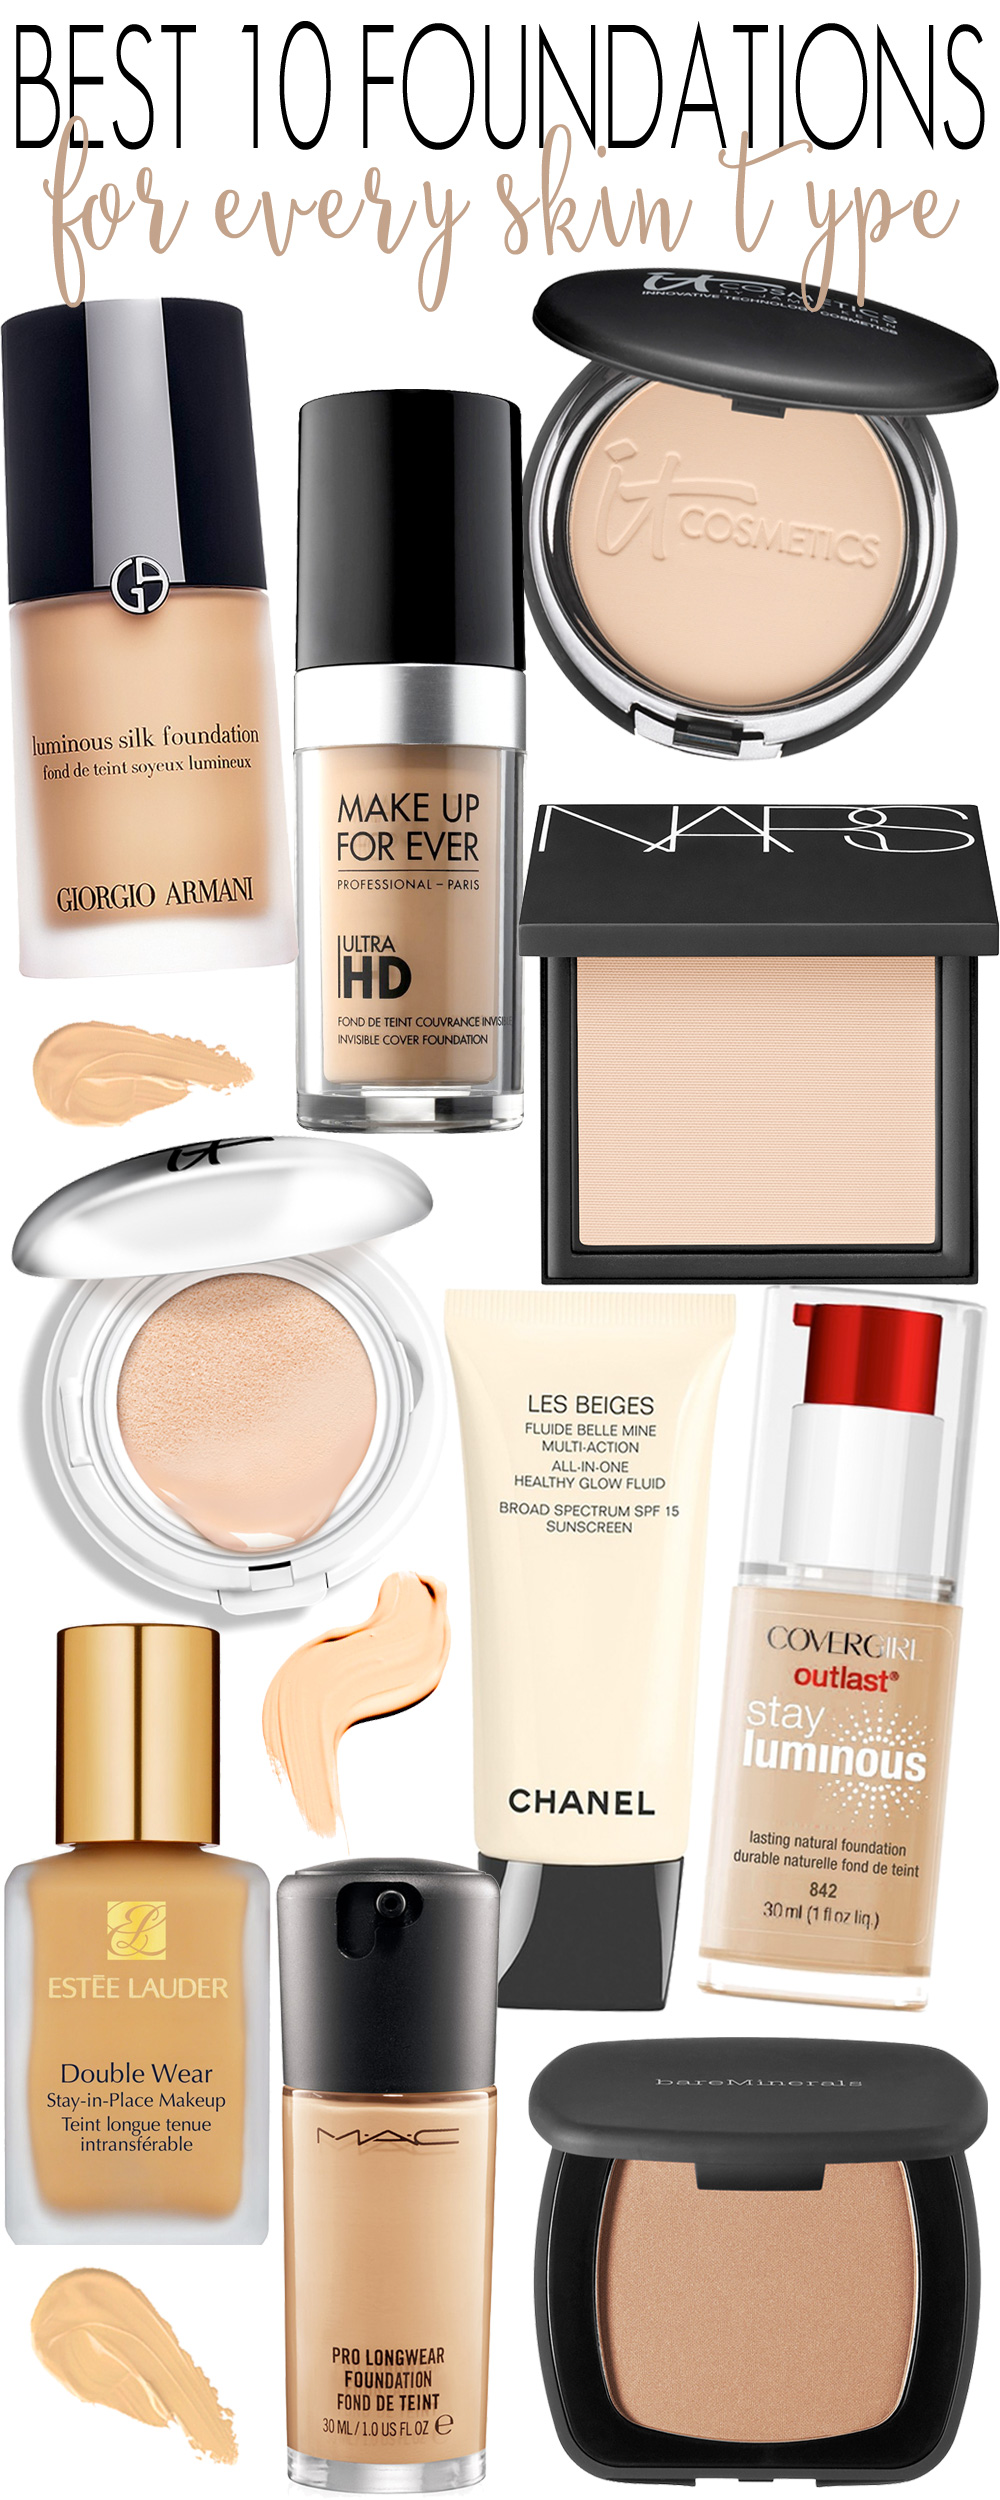 The BEST 10 Foundations for Every Skin Type